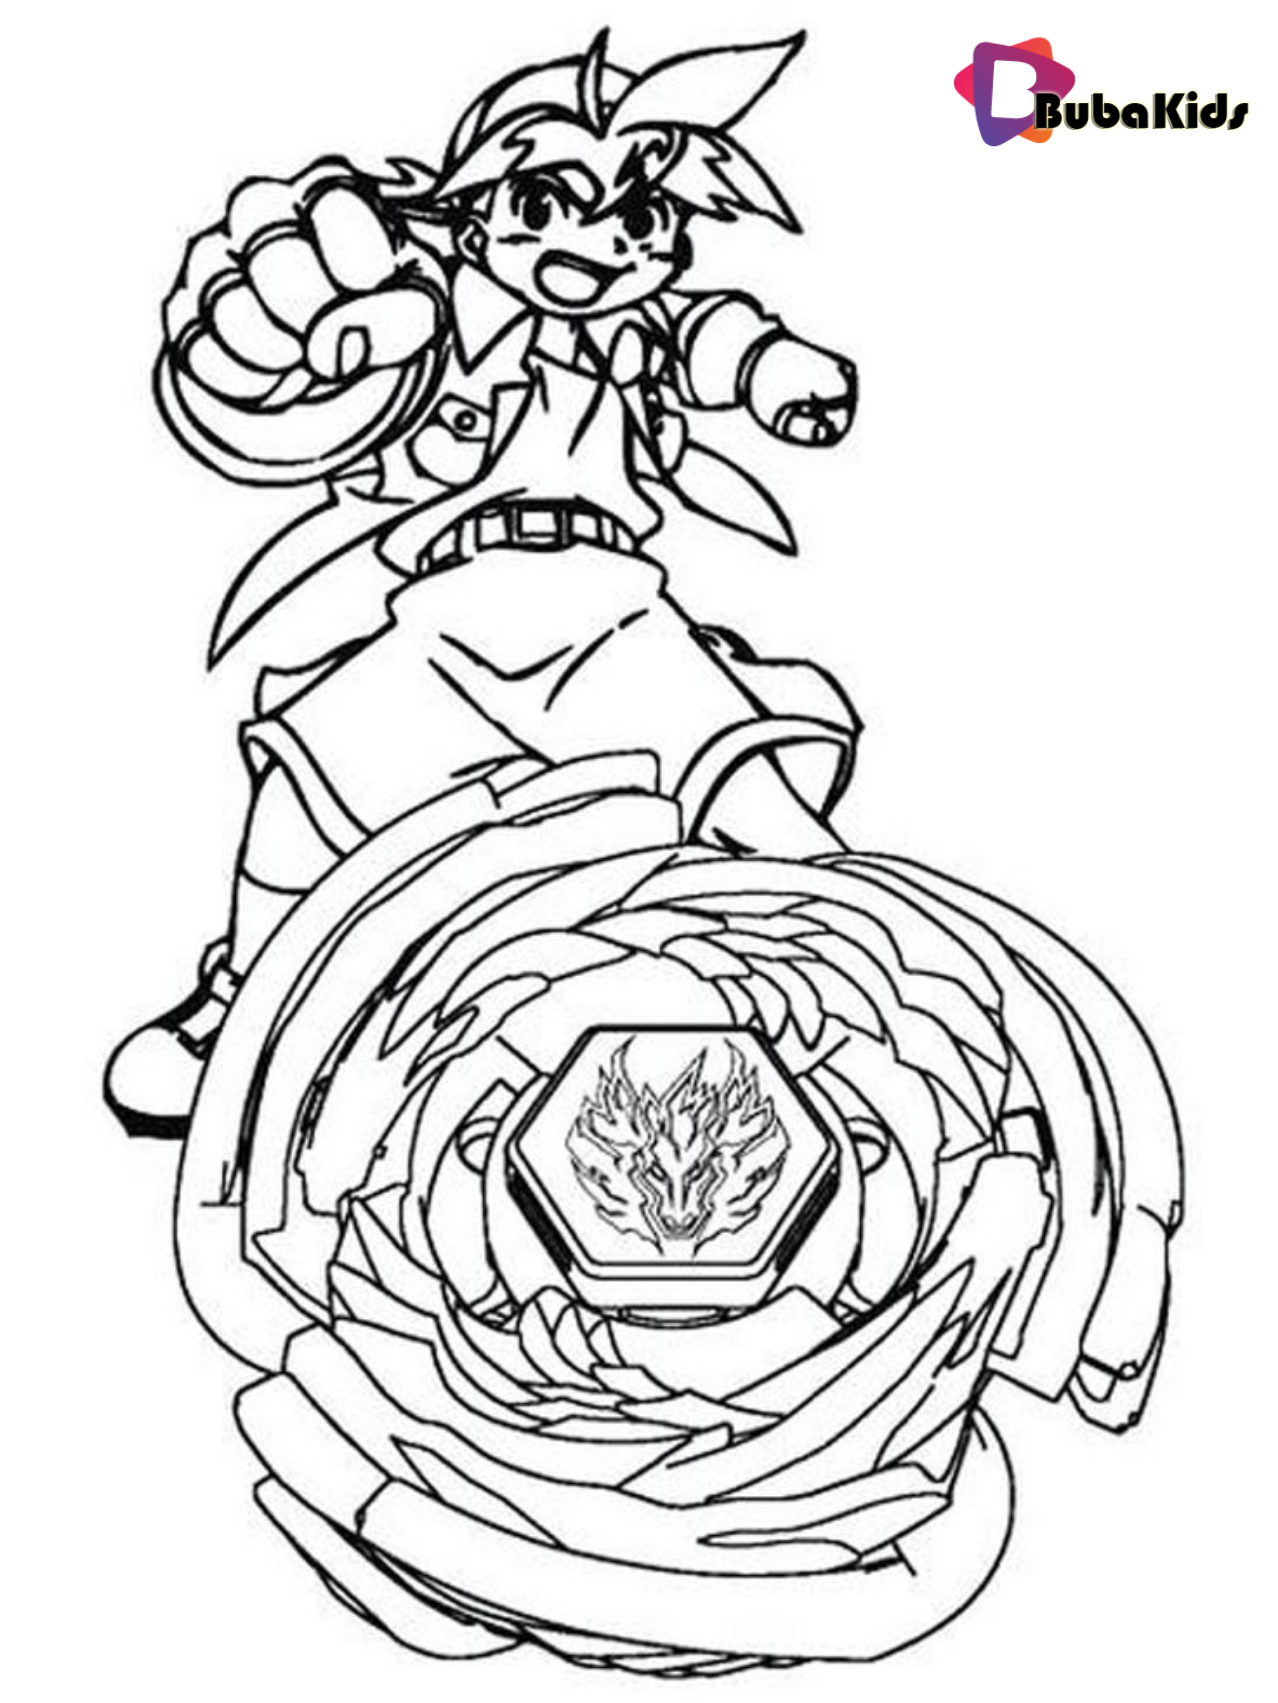 Beyblade Burst Coloring Page Printable Coloring Ideas Beyblade Burst Coloring Ideas Page Print In 2020 Coloring Pages Cartoon Coloring Pages Printable Coloring